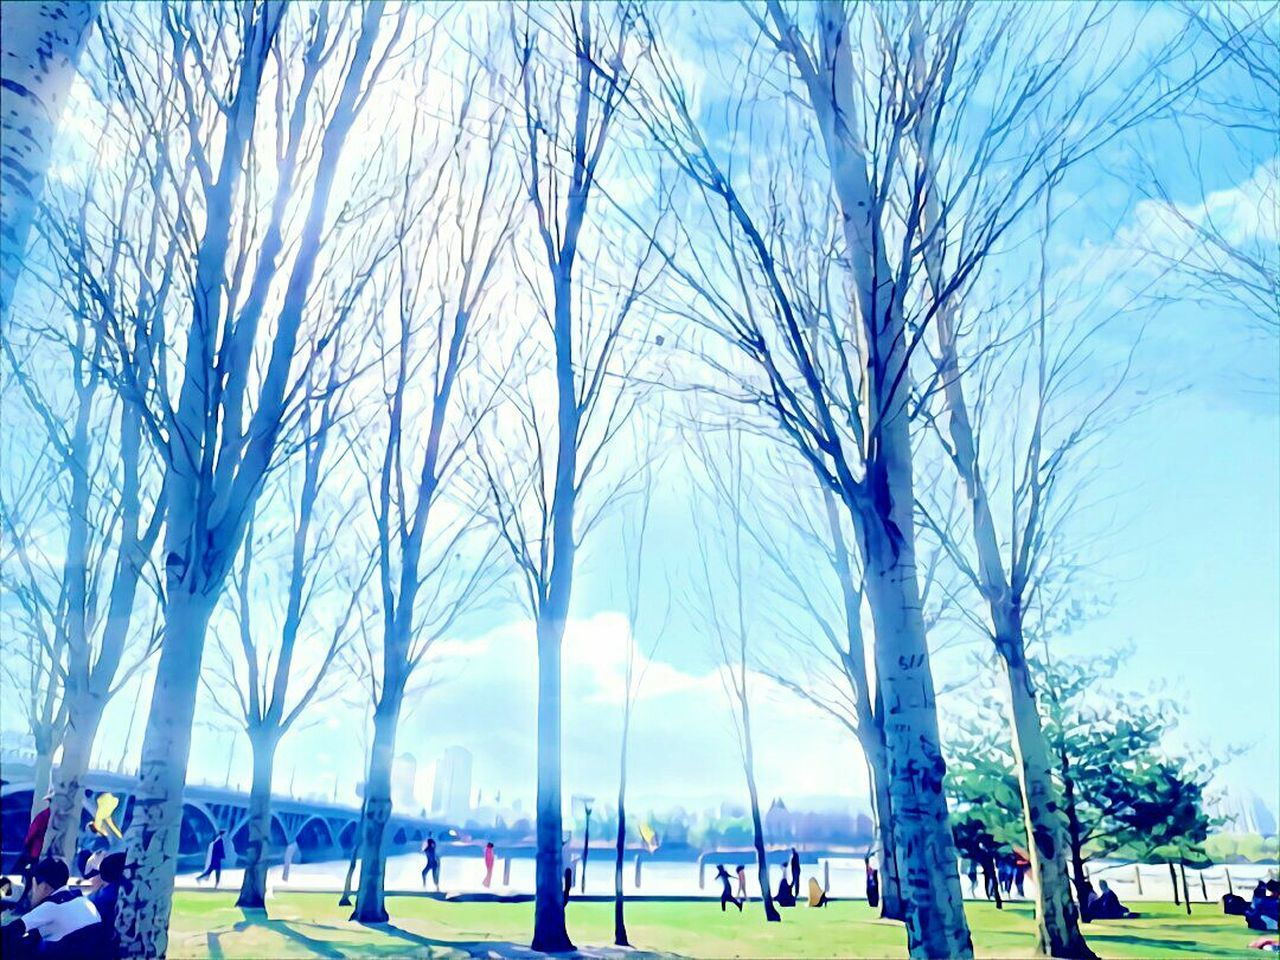 tree, bare tree, branch, park - man made space, sky, day, group of people, outdoors, people, city, grass, nature